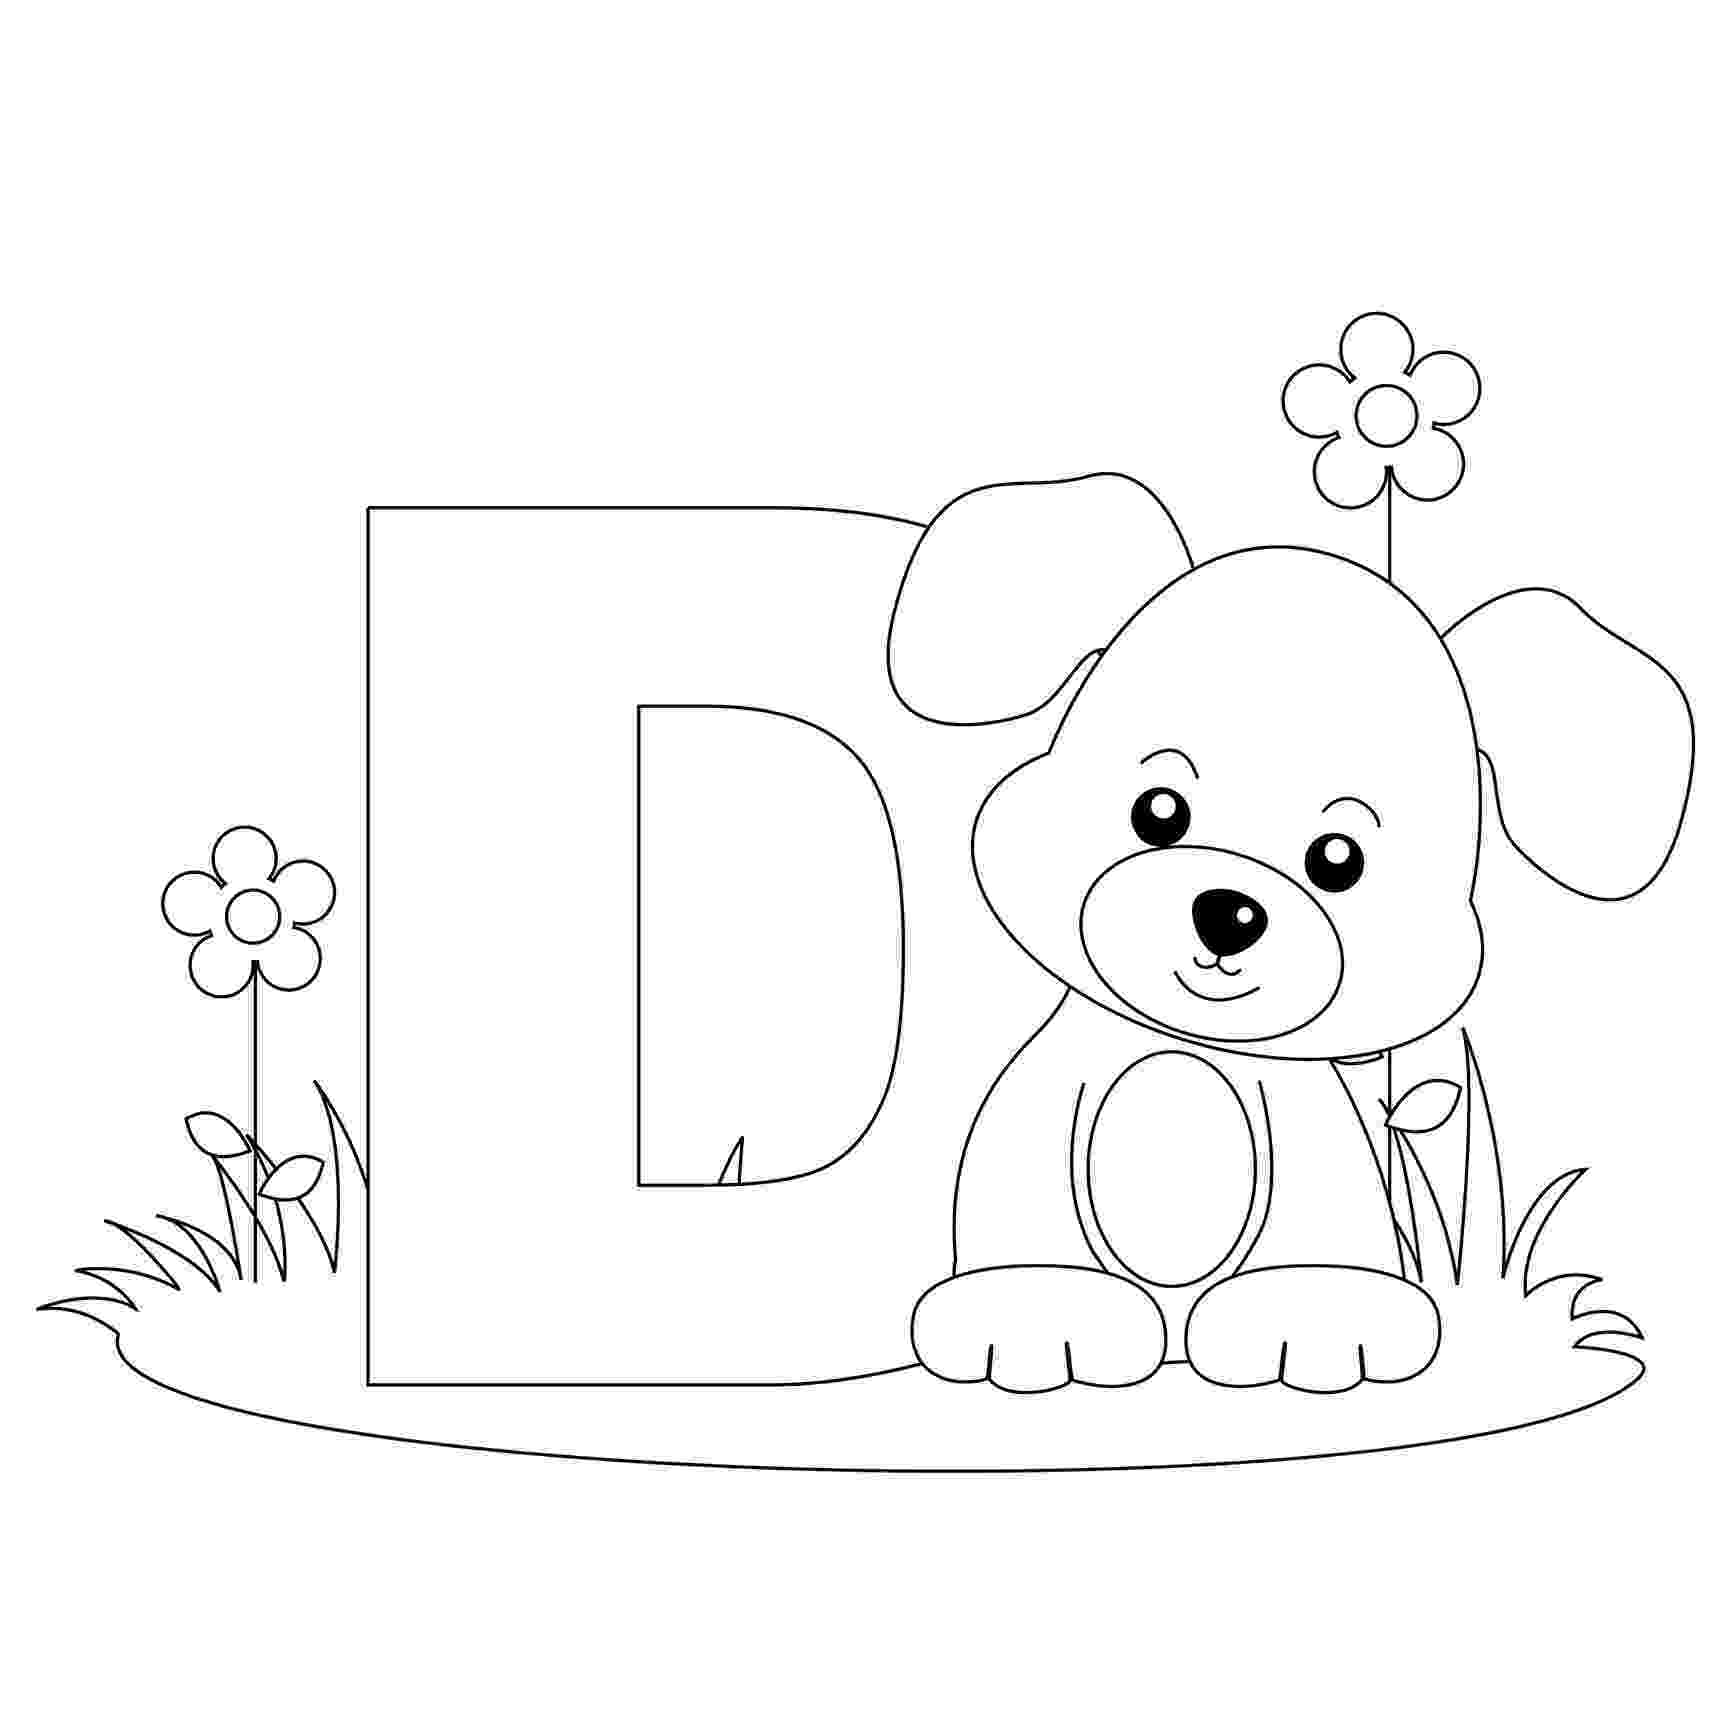 free alphabet coloring pages free printable alphabet coloring pages for kids best free coloring alphabet pages